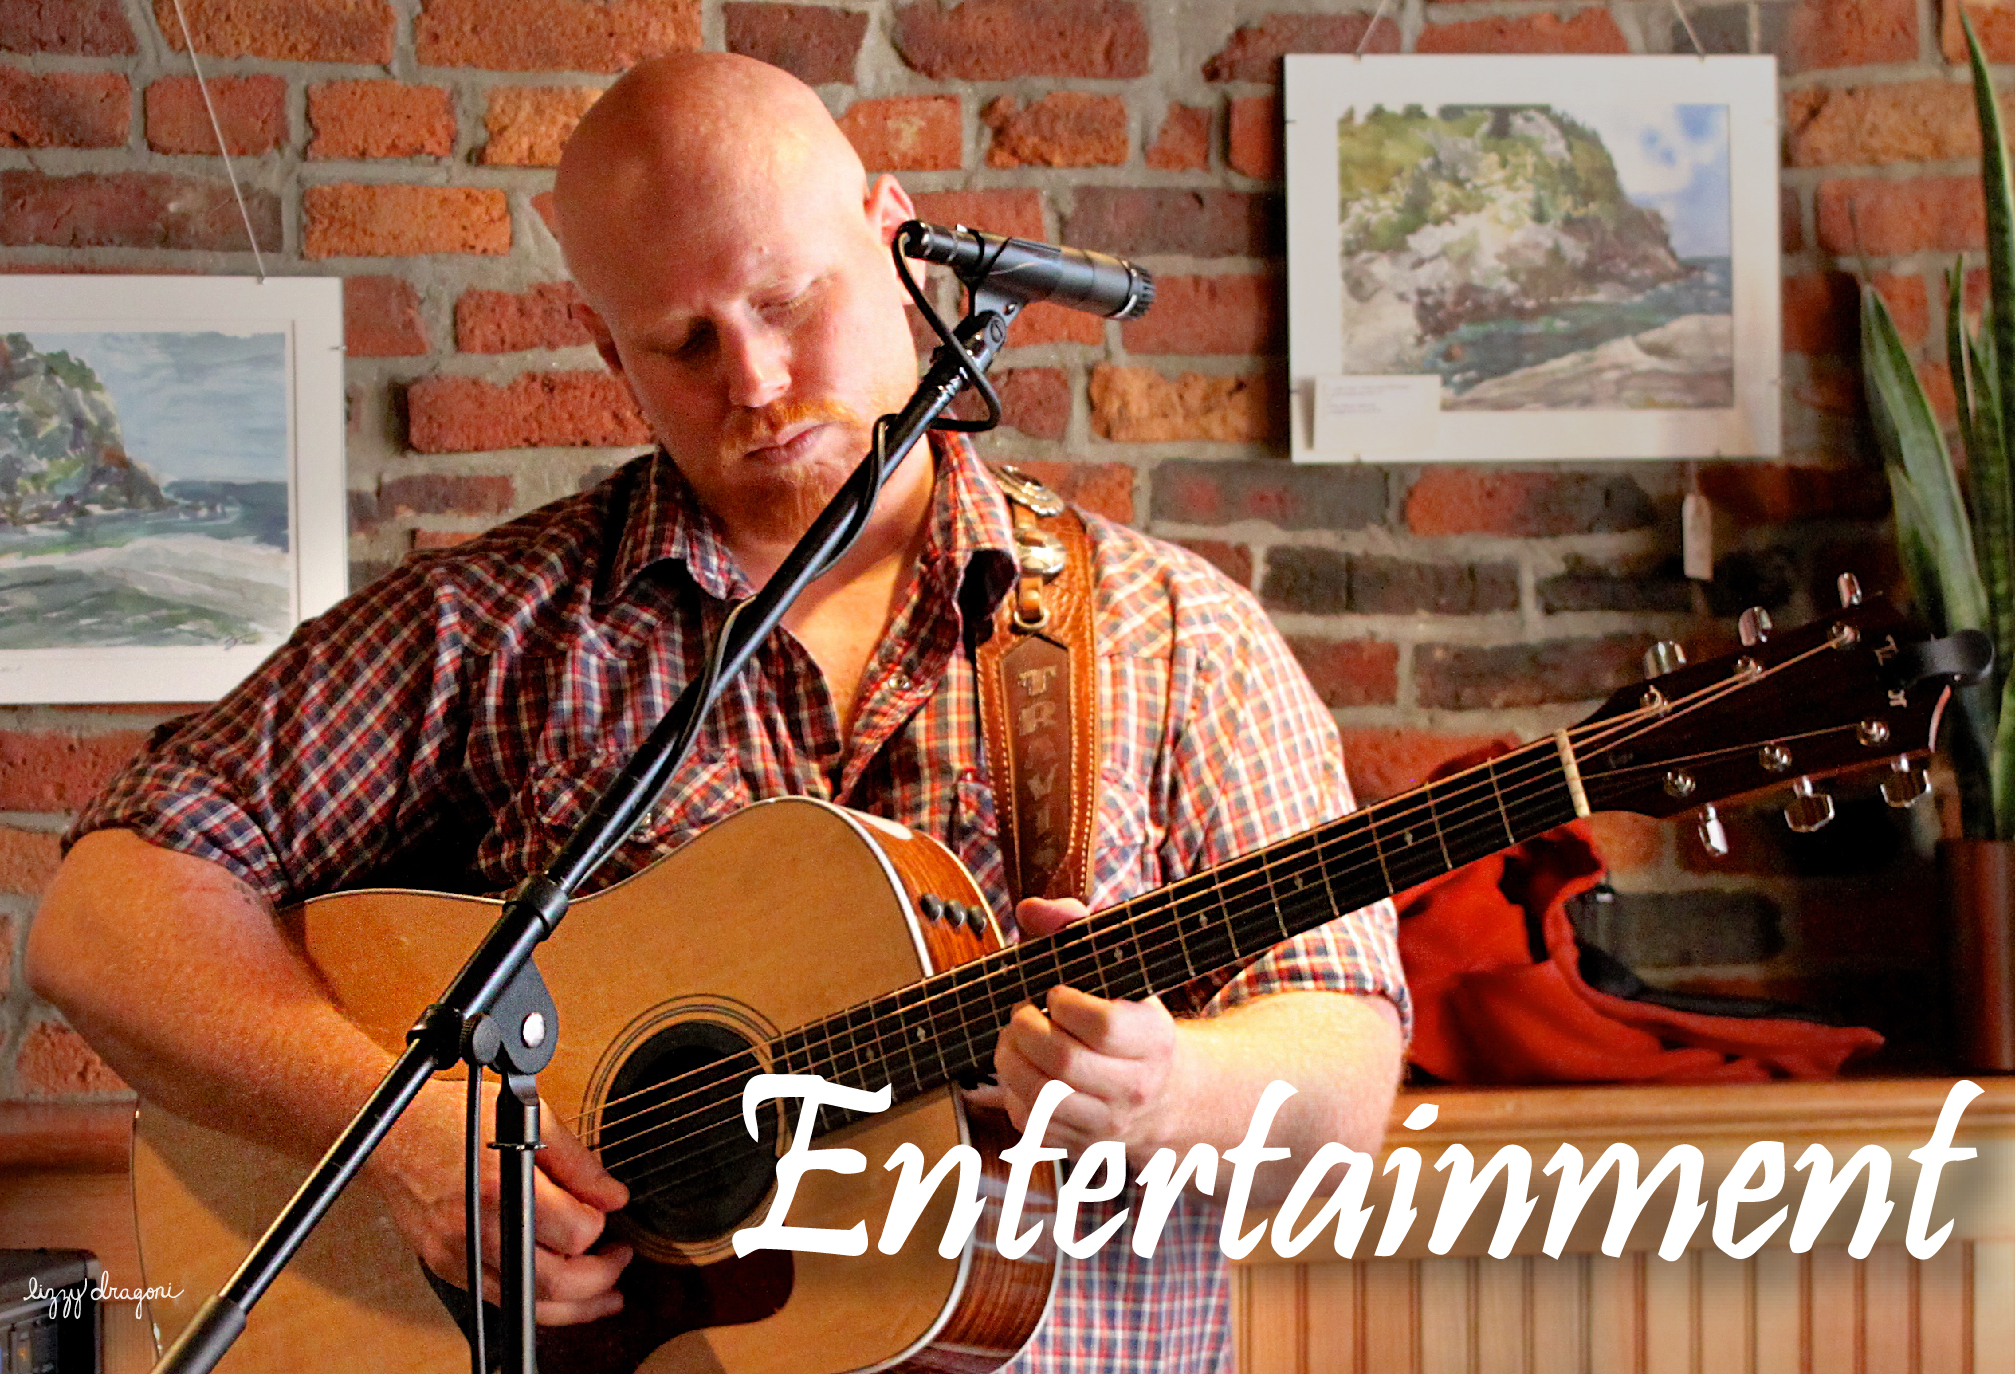 Keep scrolling to learn more about Dogfish Entertainment!